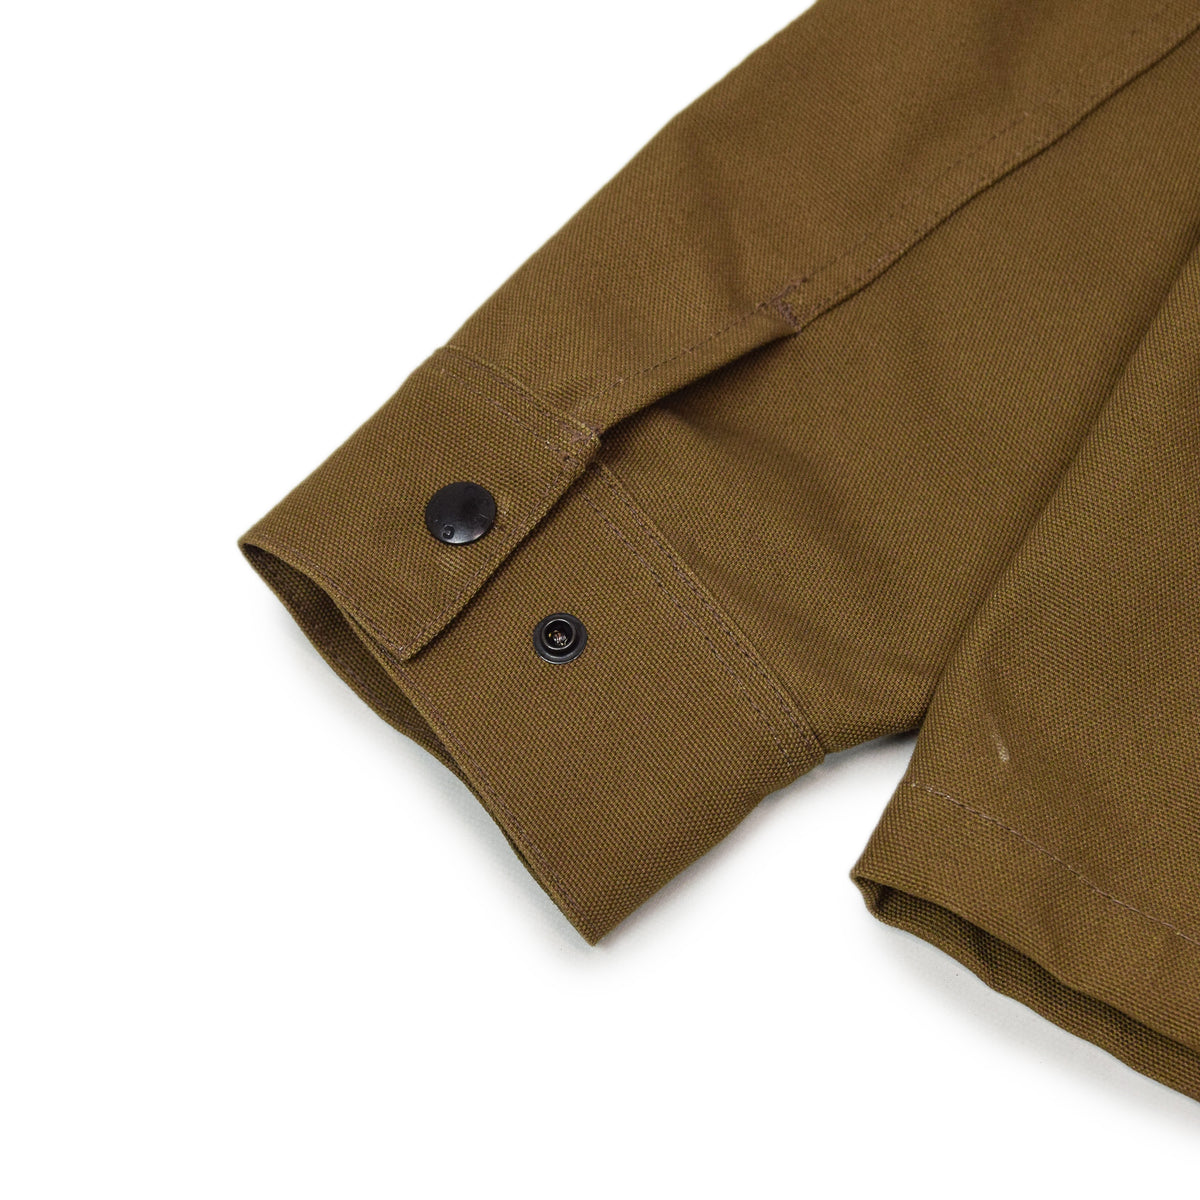 Filson CCF Duck Canvas Chore Coat Sepia cuff detail